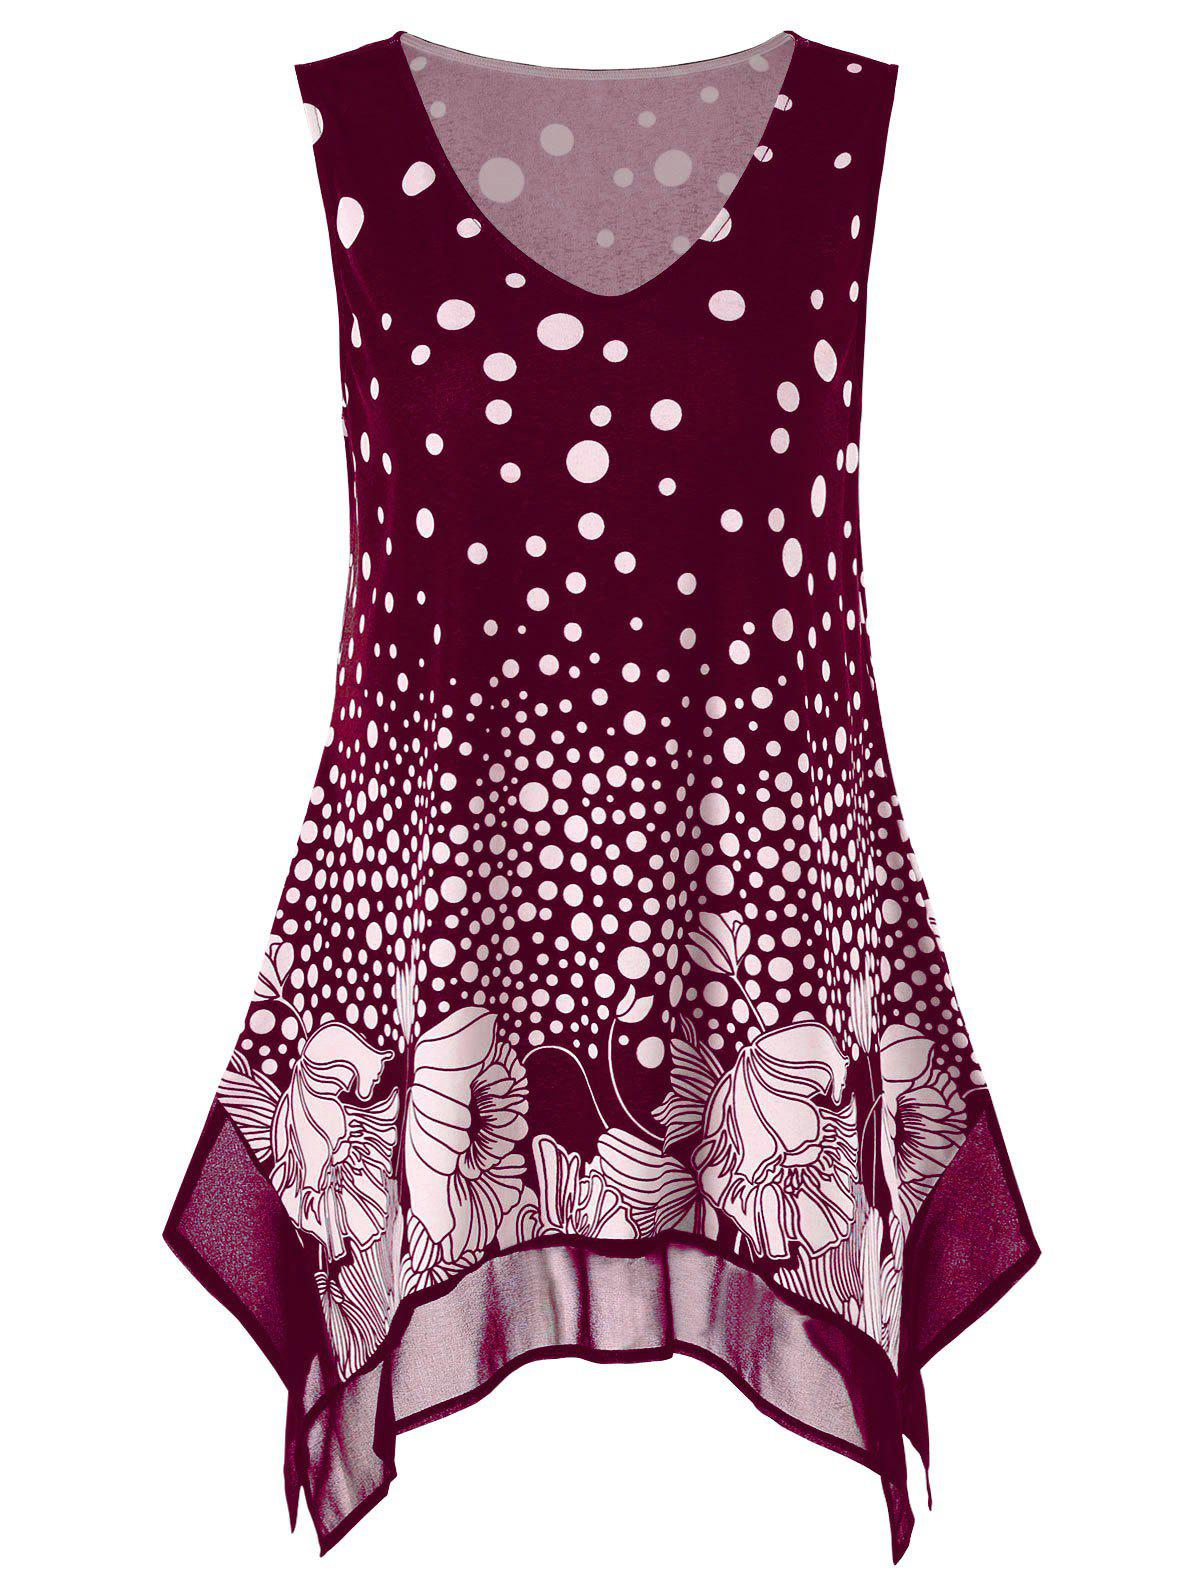 Plus Size Polka Dot Floral Tunic Tank Top, Wine red